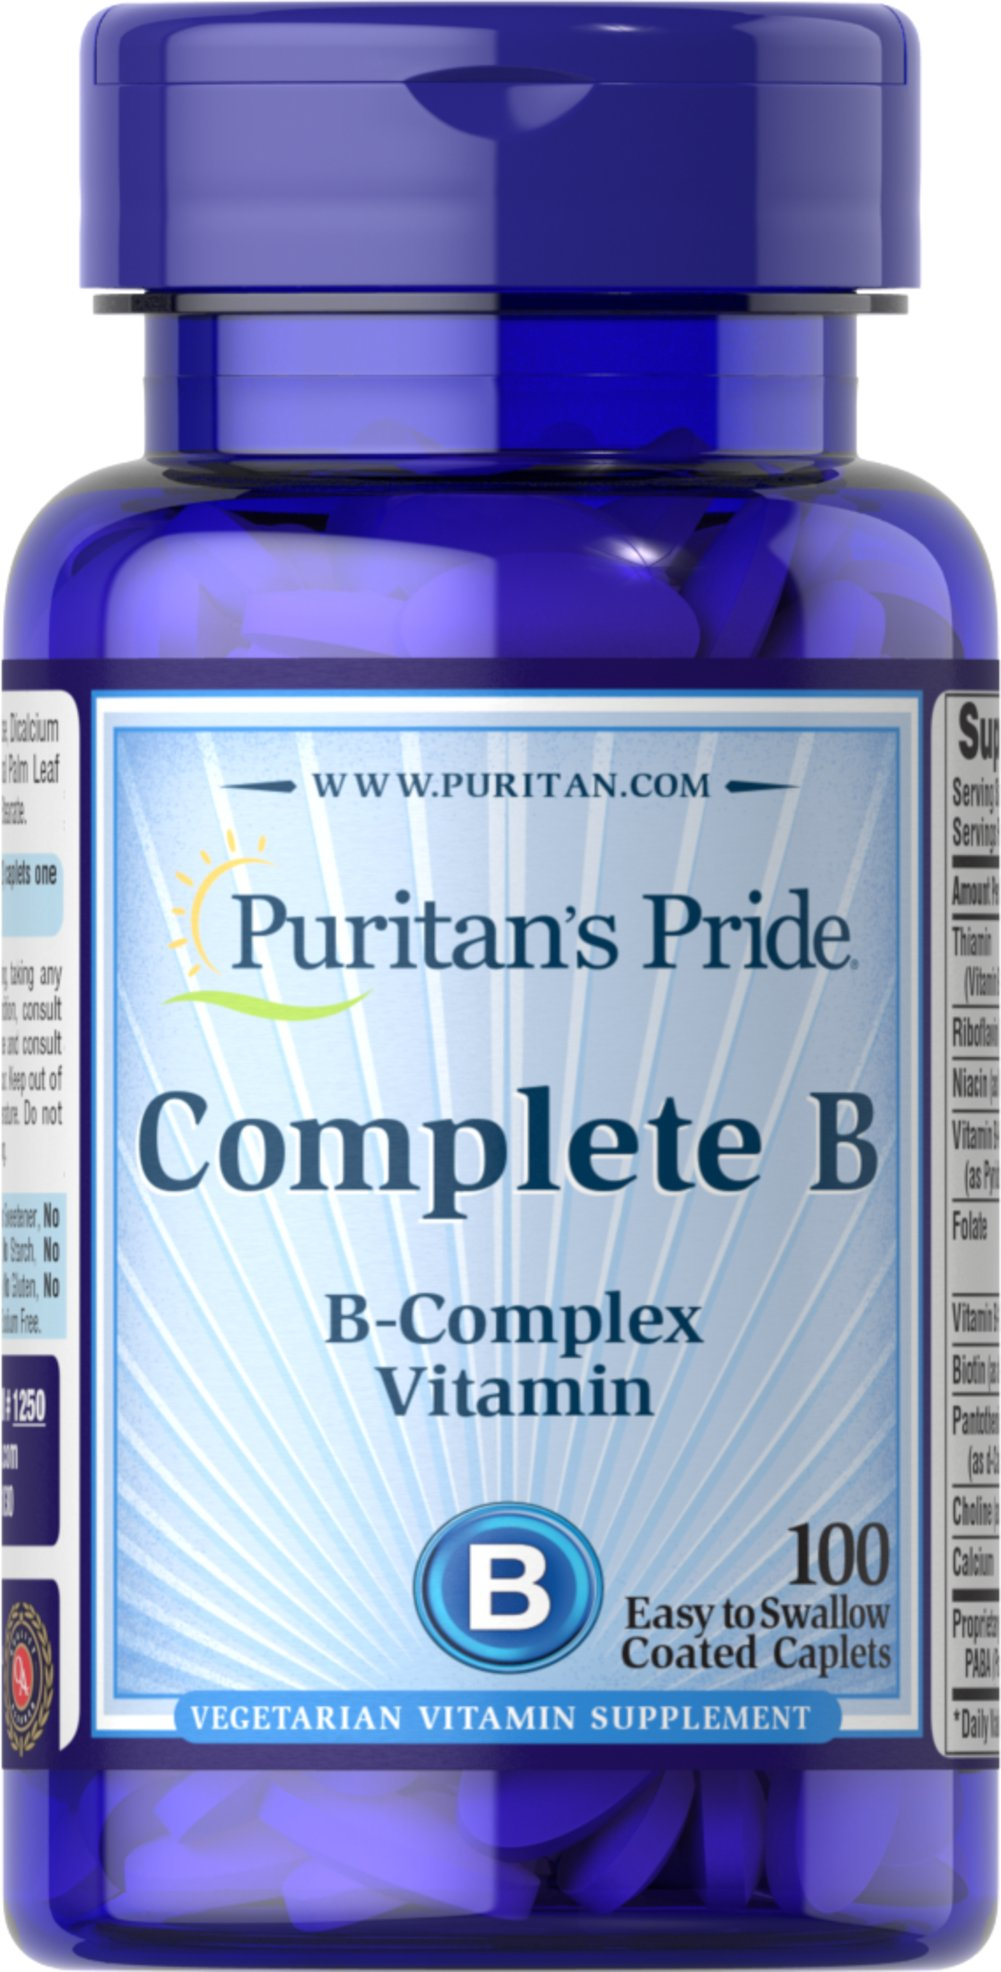 Complete B (Vitamin B Complex) <p>Complete Vitamin B Complex provides seven important B vitamins in just two caplets without sugar, starch, artificial colors or flavors. You get the entire B family in this sodium-free tablet the best B vitamin nutrition you can buy! Complete B can give you the peace of mind you deserve.</p> 100 Caplets  $12.99